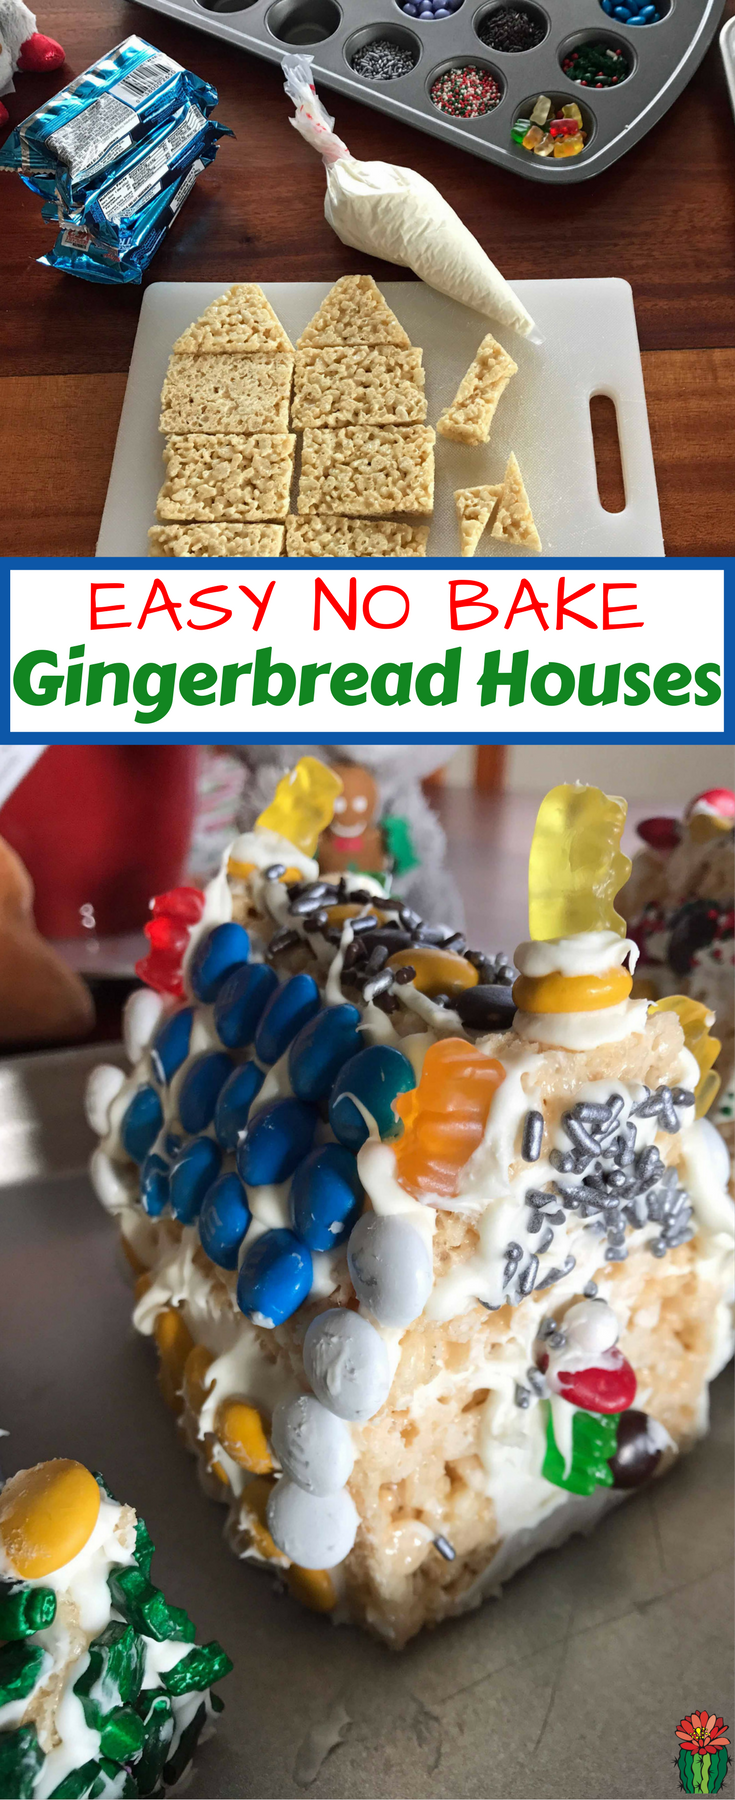 Ready for the easiest gingerbread house ever? Use store-bought Rice Krispies treats! A Rice Krispies Gingerbread House is festive fun without the stress!